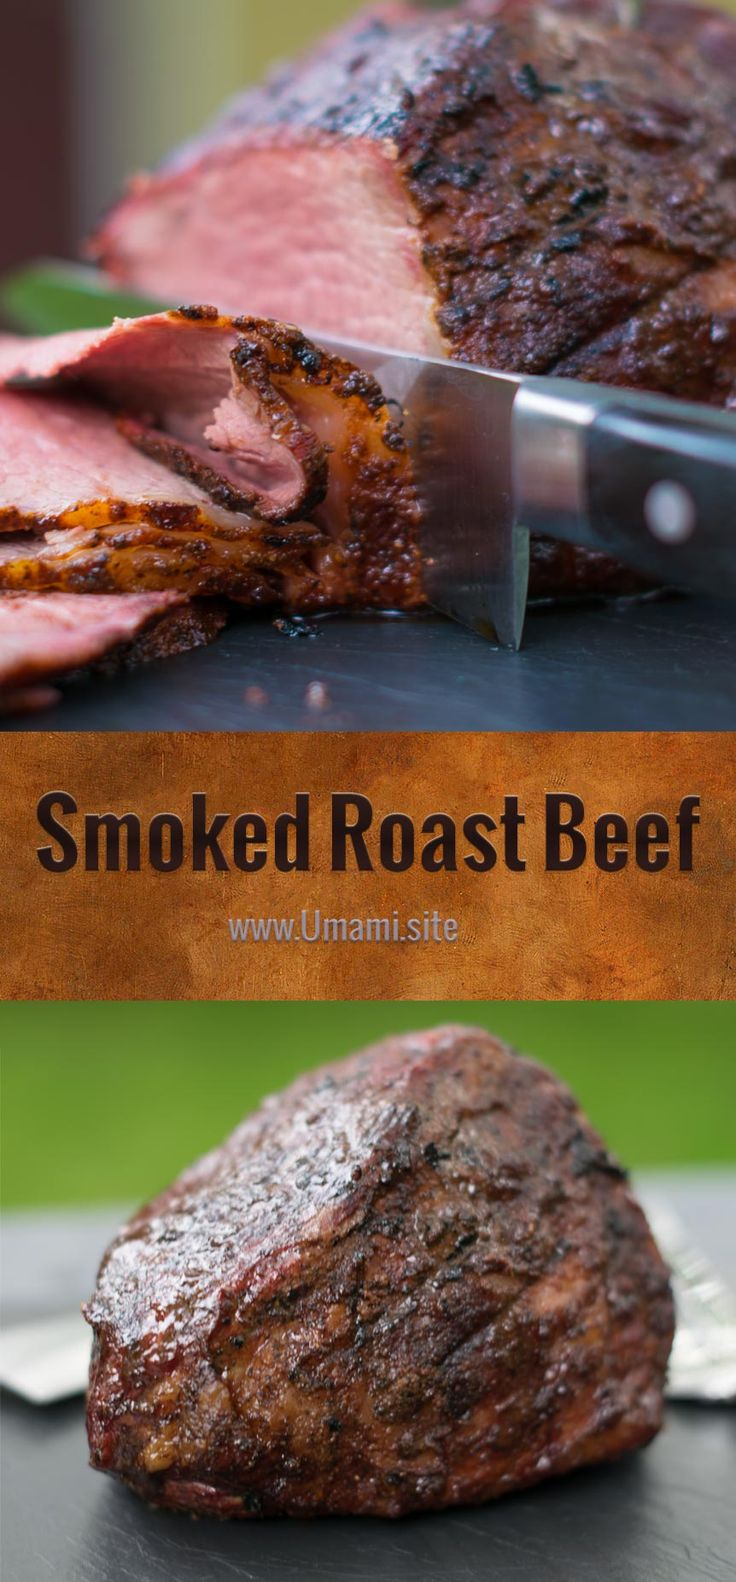 We love great roast beef sandwiches, which seem harder and harder to find by the day. We also love slow-cooked, beef roasts with a deep smoky flavor. Smoking a beef roast over low heat produces delicious flavors and a roast with a soft, juicy texture that melts in your mouth.